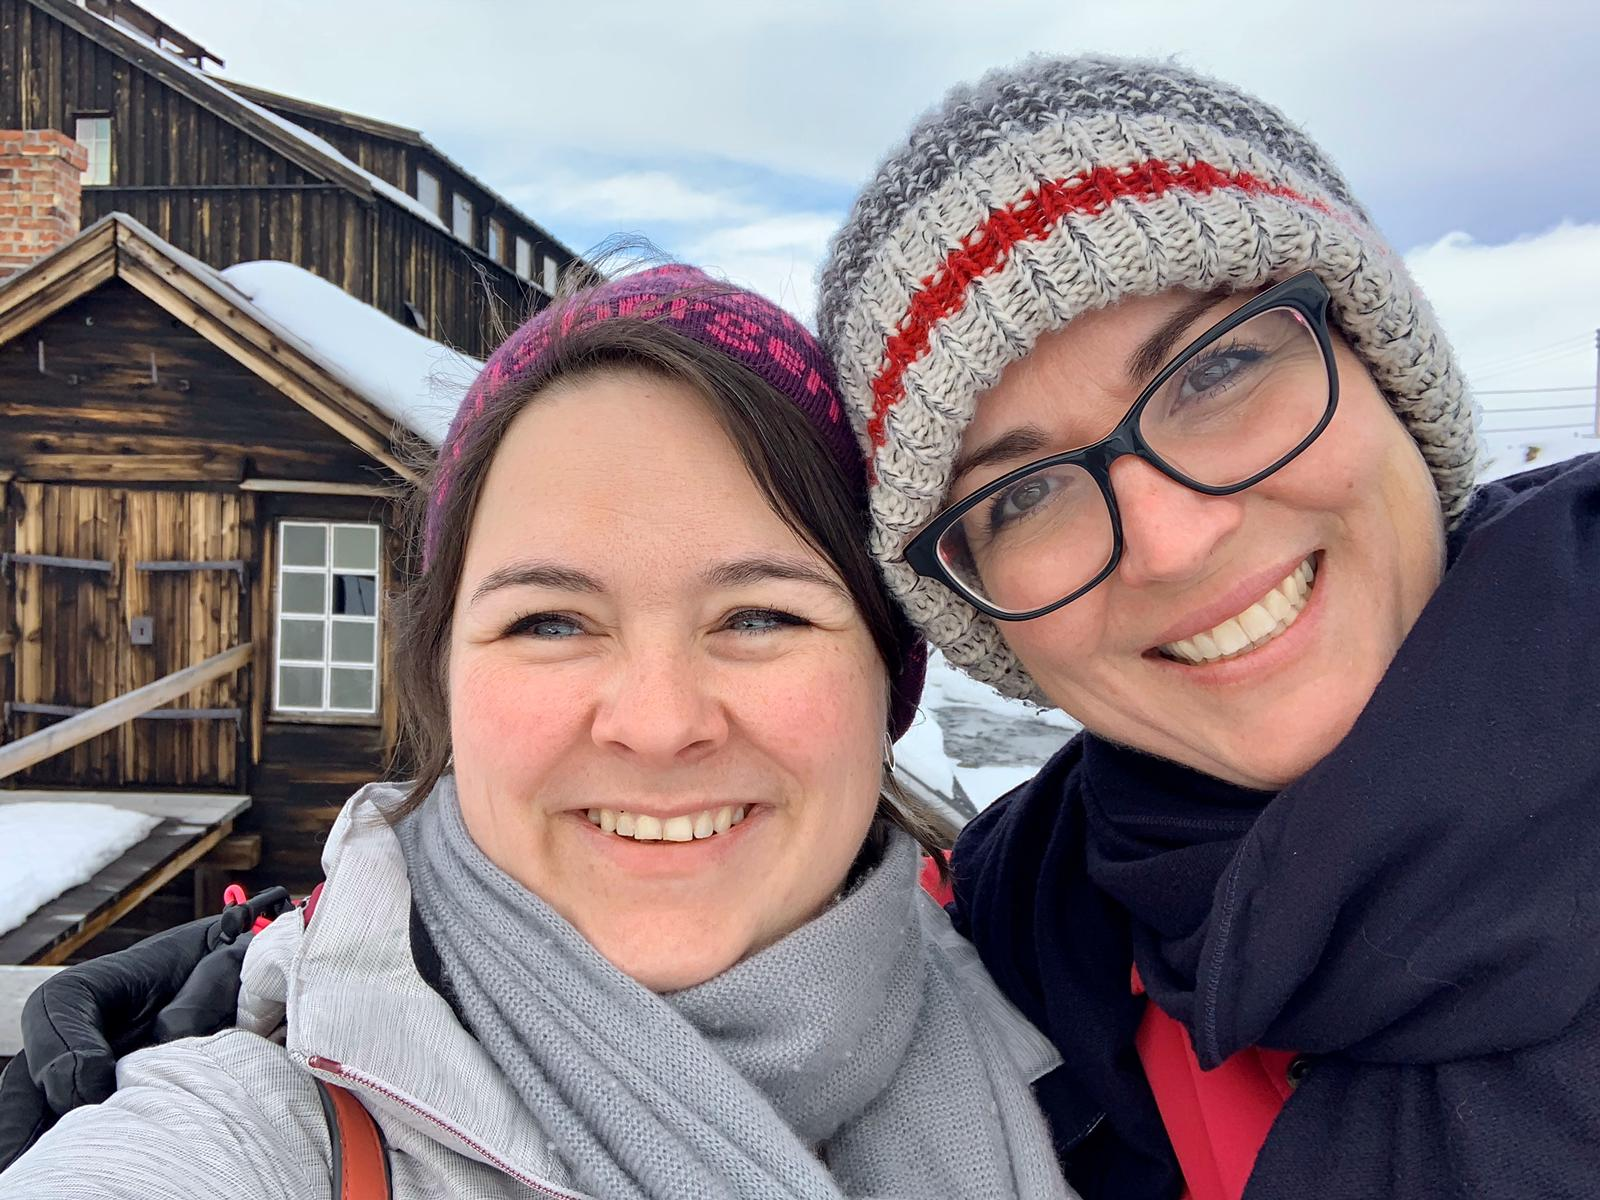 Beate and Jen in winter jackets and hats, in front of a very old wooden building covered in snow